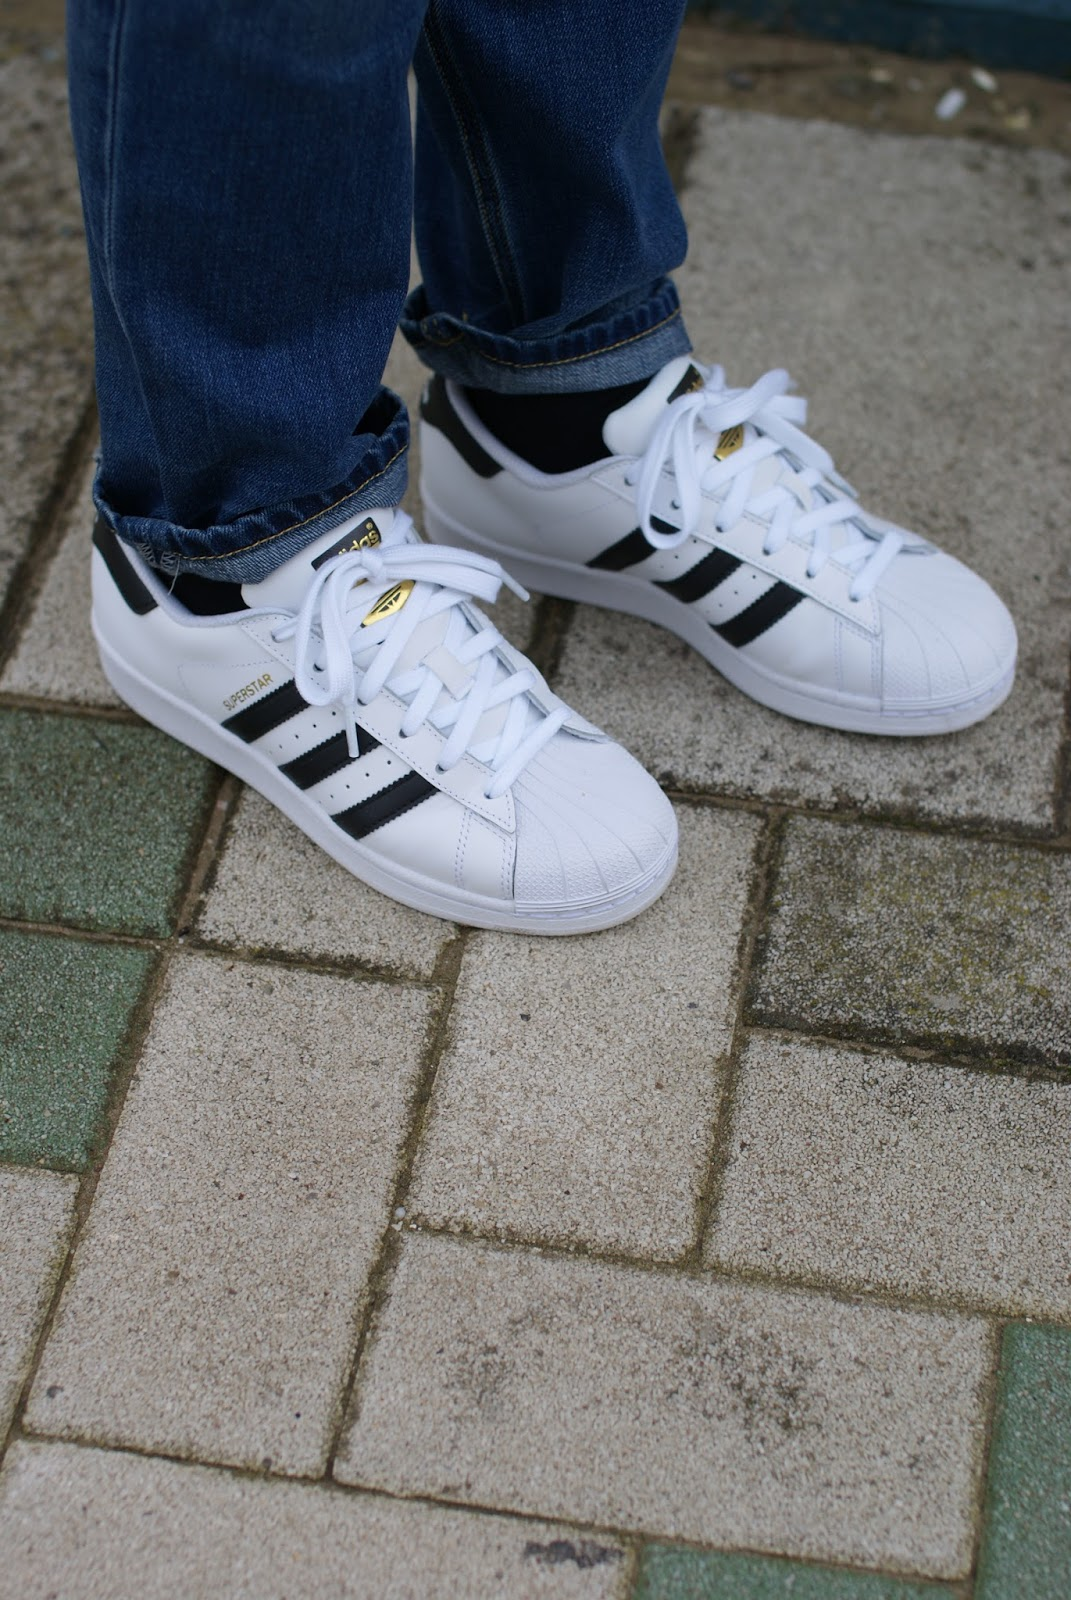 Adidas Superstar sneakers on Fashion and Cookies fashion blog, fashion blogger style